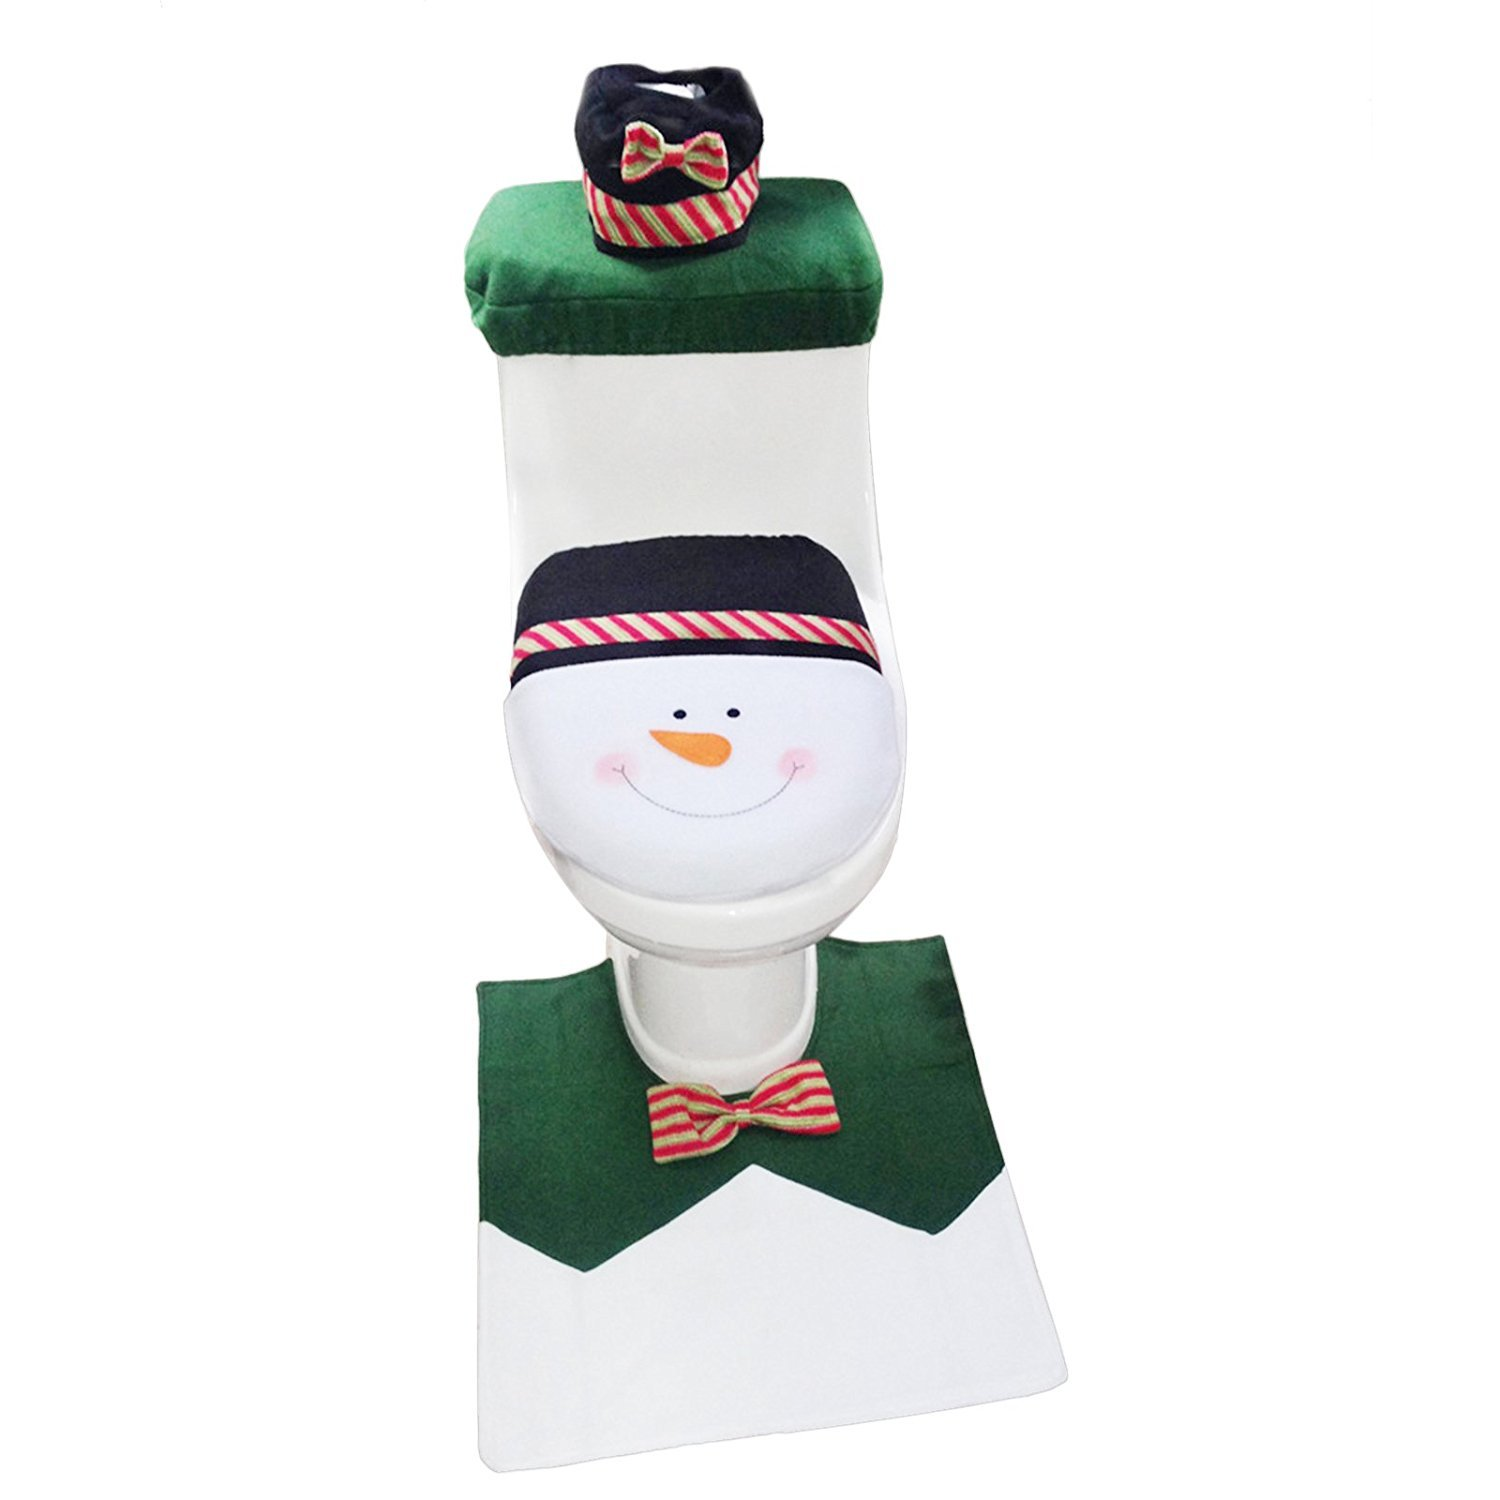 1 Set Snowman Toilet Seat Cover And Rug Bathroom Christmas Decoration Decor